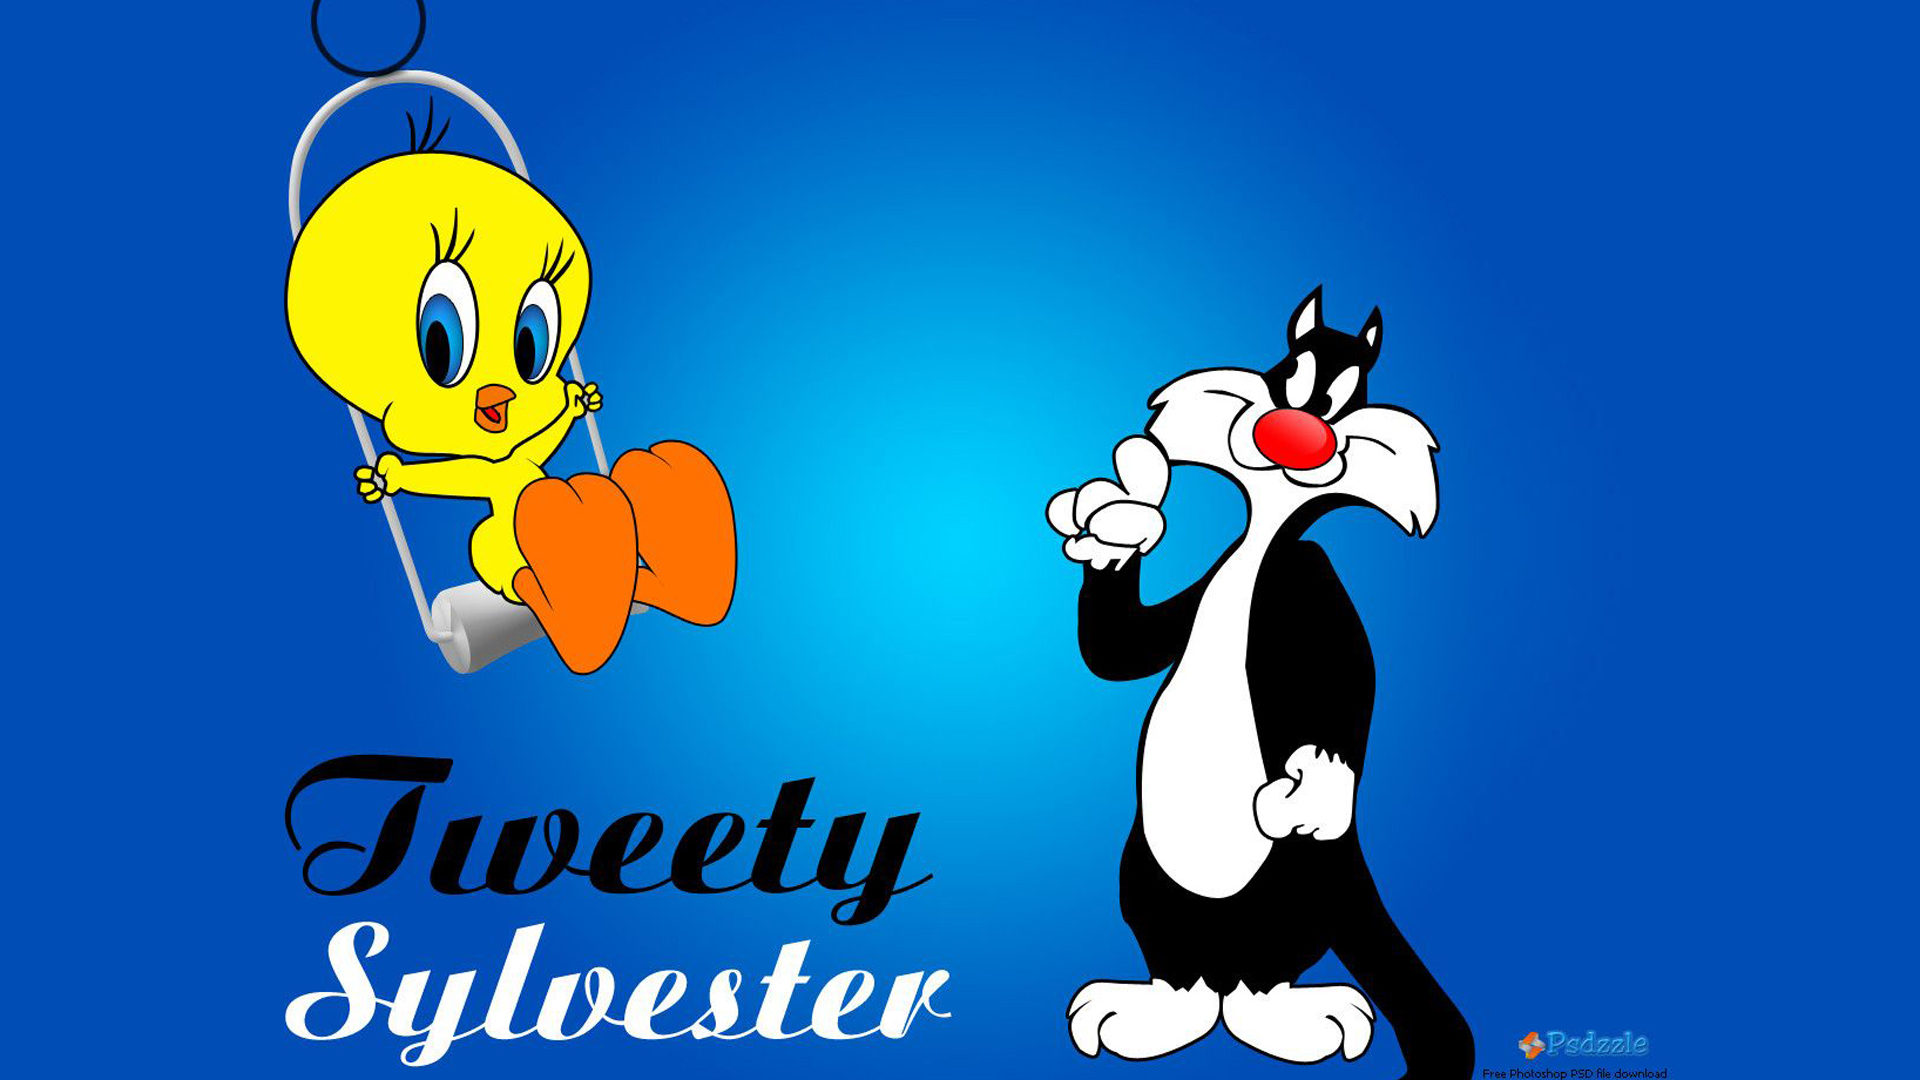 Cute Summer Love Wallpapers Lonnie Tounes Cartoon Tweety Bird Amp Sylvester Cat Swing